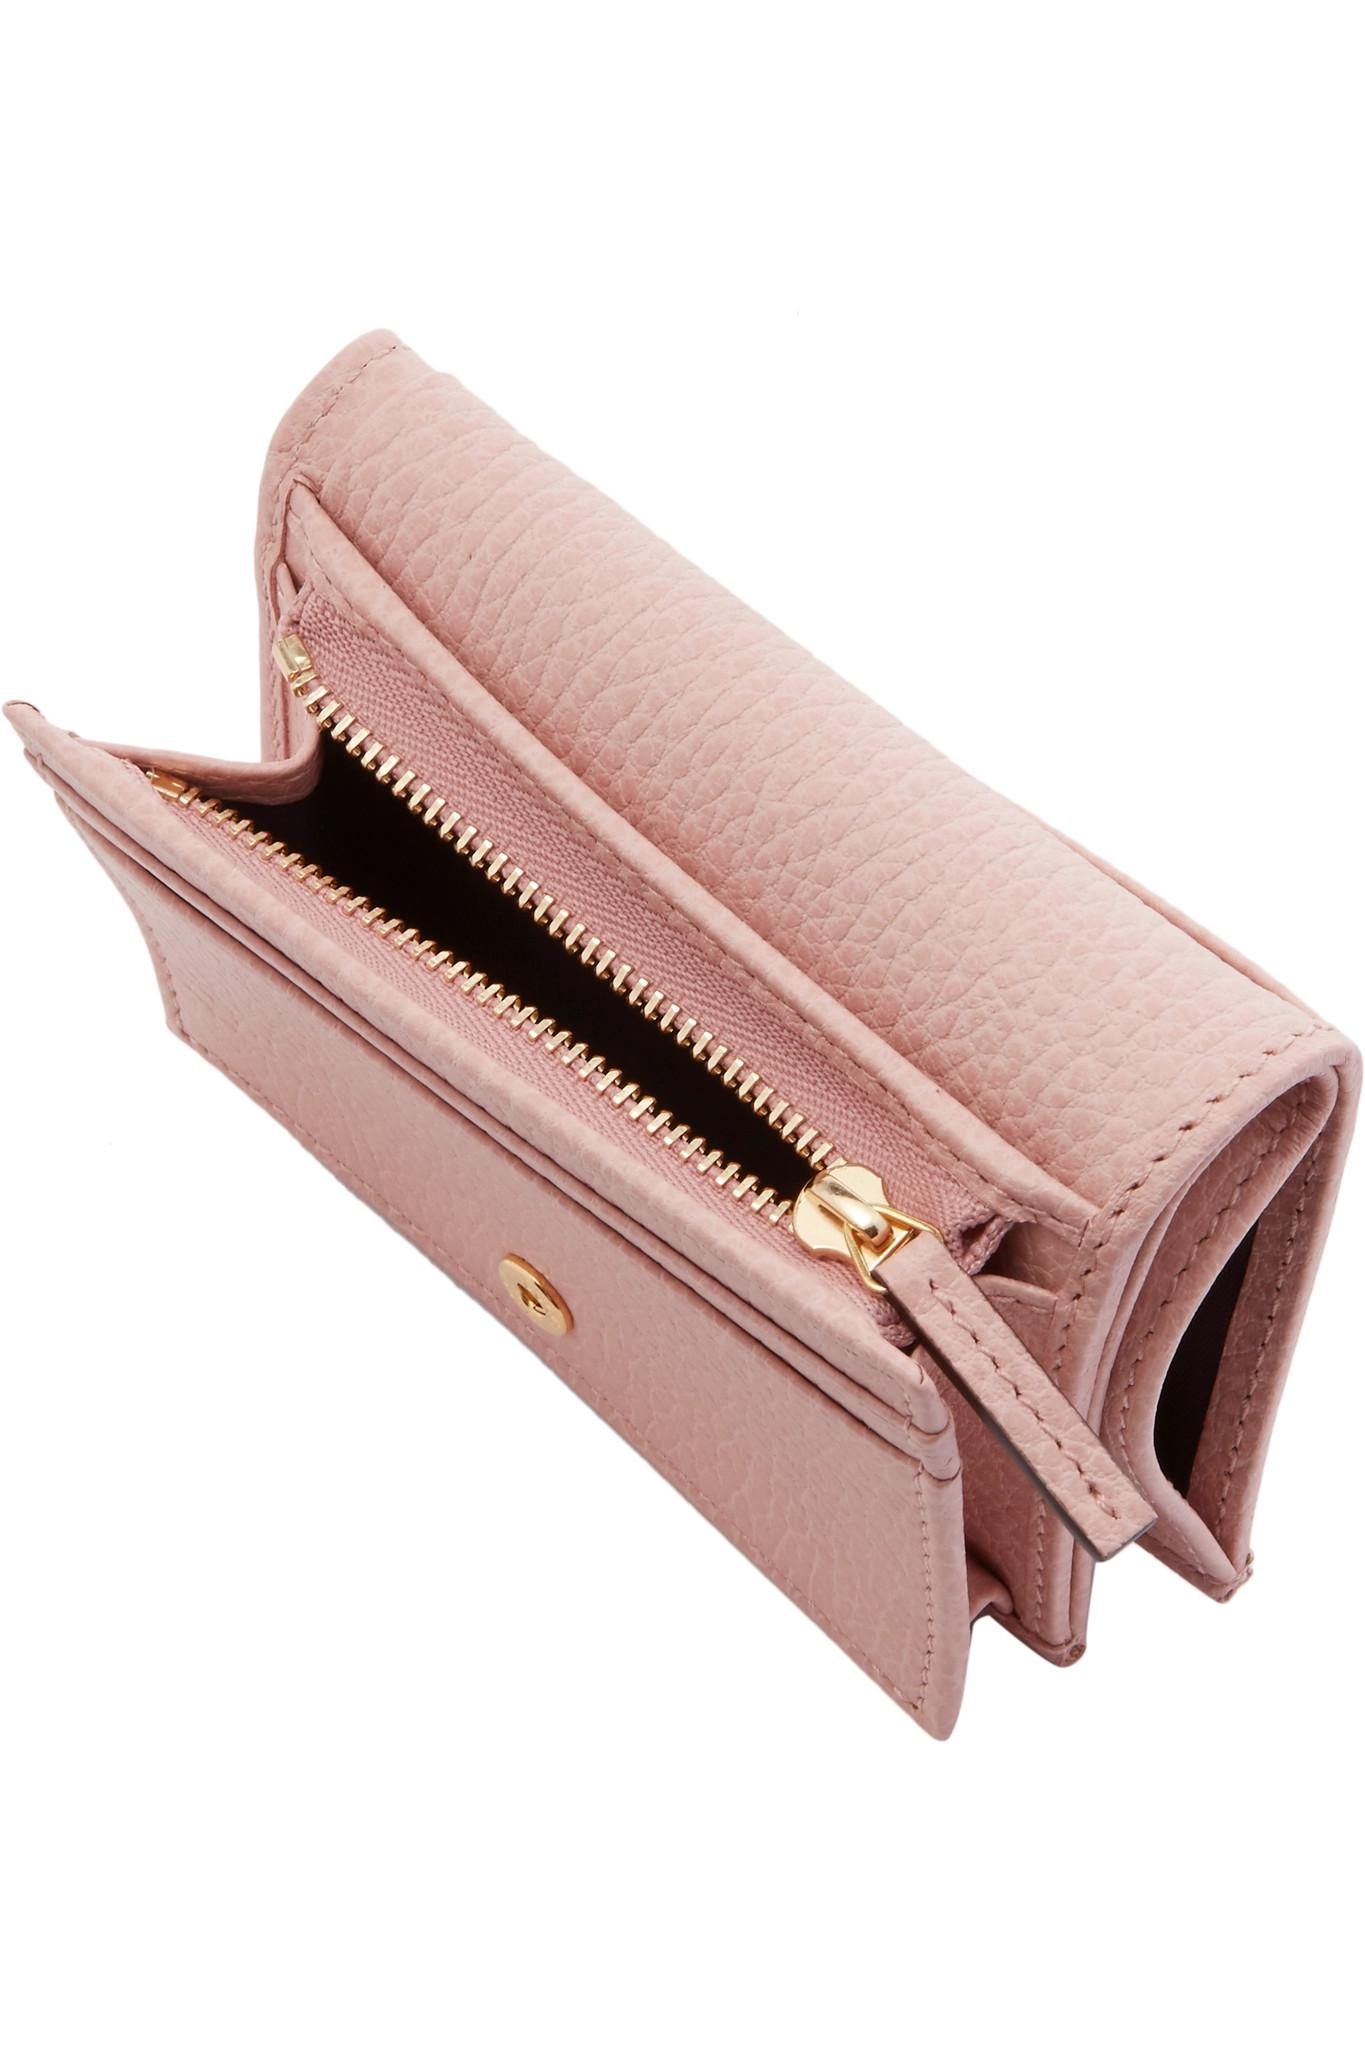 c7793d469d4ec Lyst - Gucci Marmont Petite Textured-leather Wallet in Pink